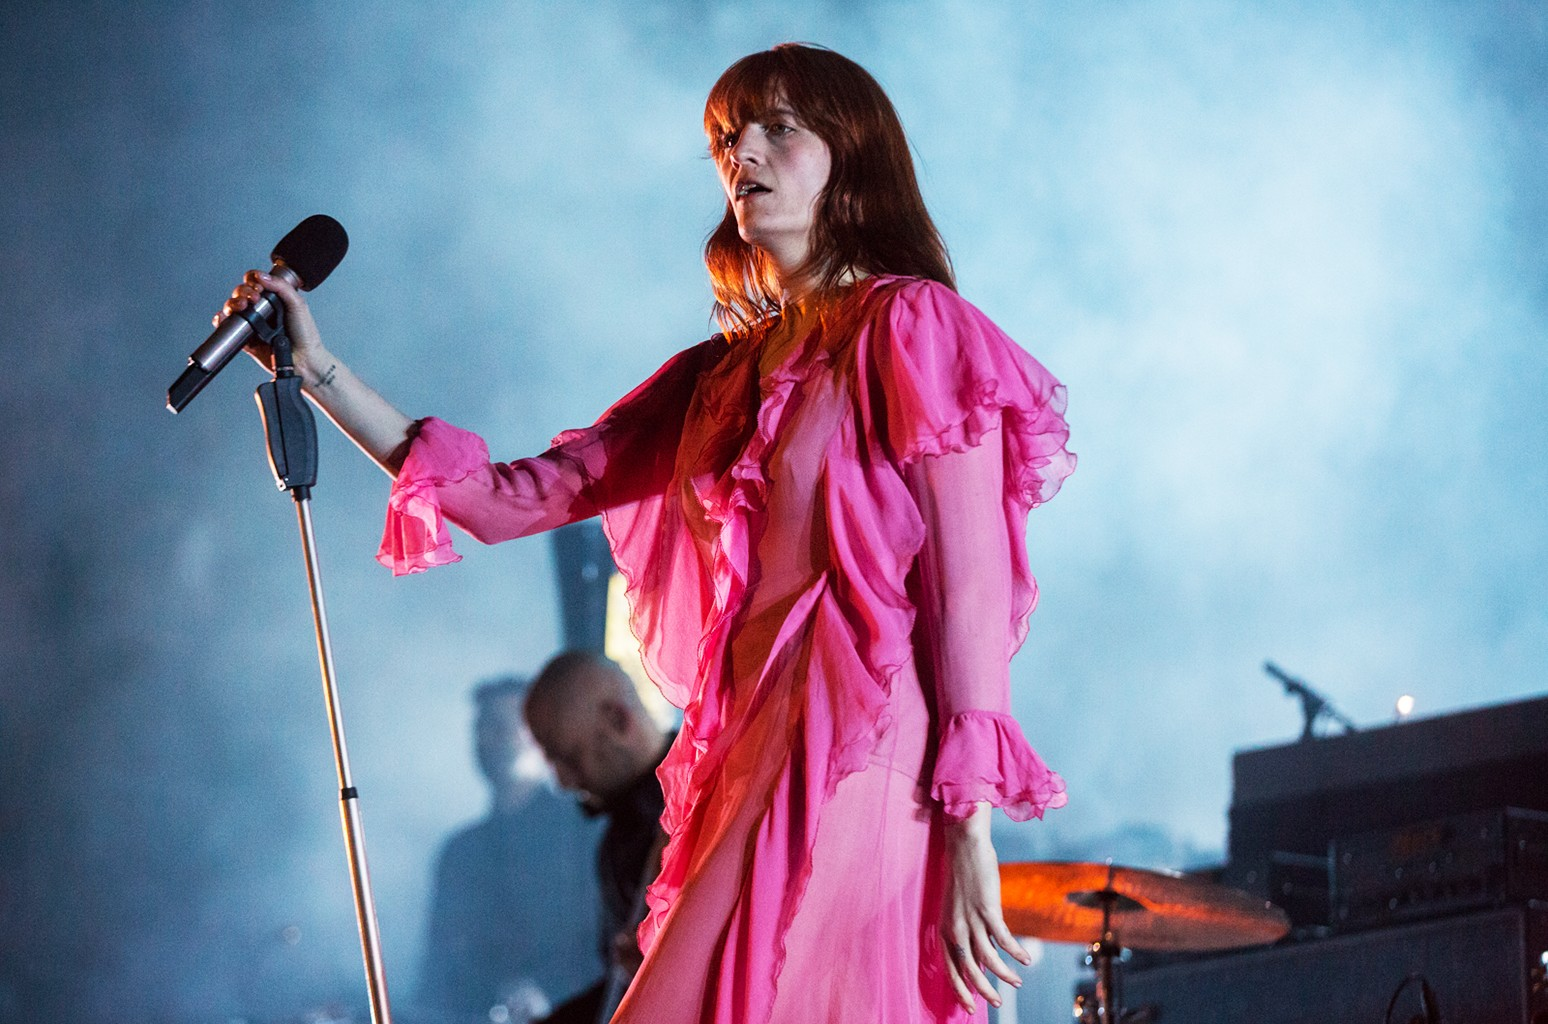 Florence + the Machine performs at Sasquatch! Music Festival on May 30, 2016.